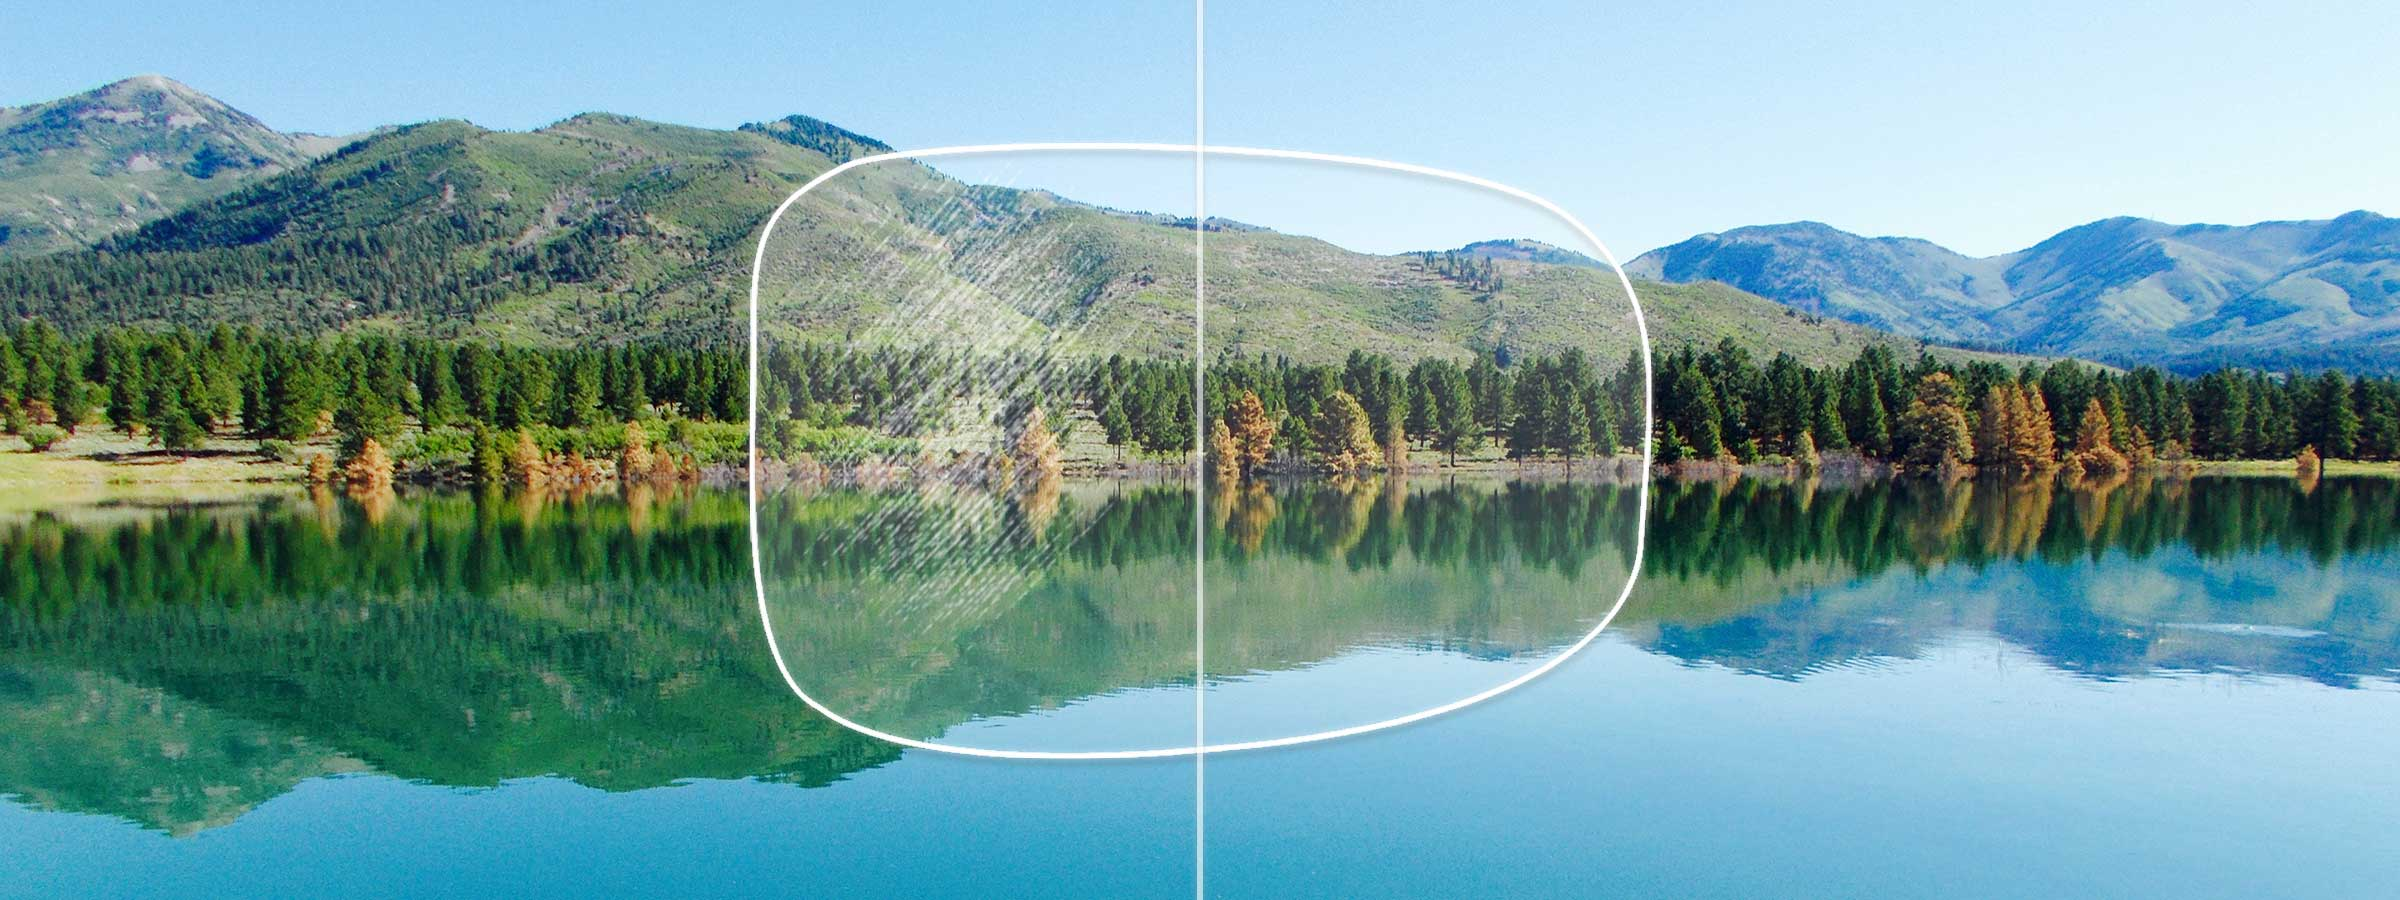 View of a lakeside forest through a lens with and  without a hard coating